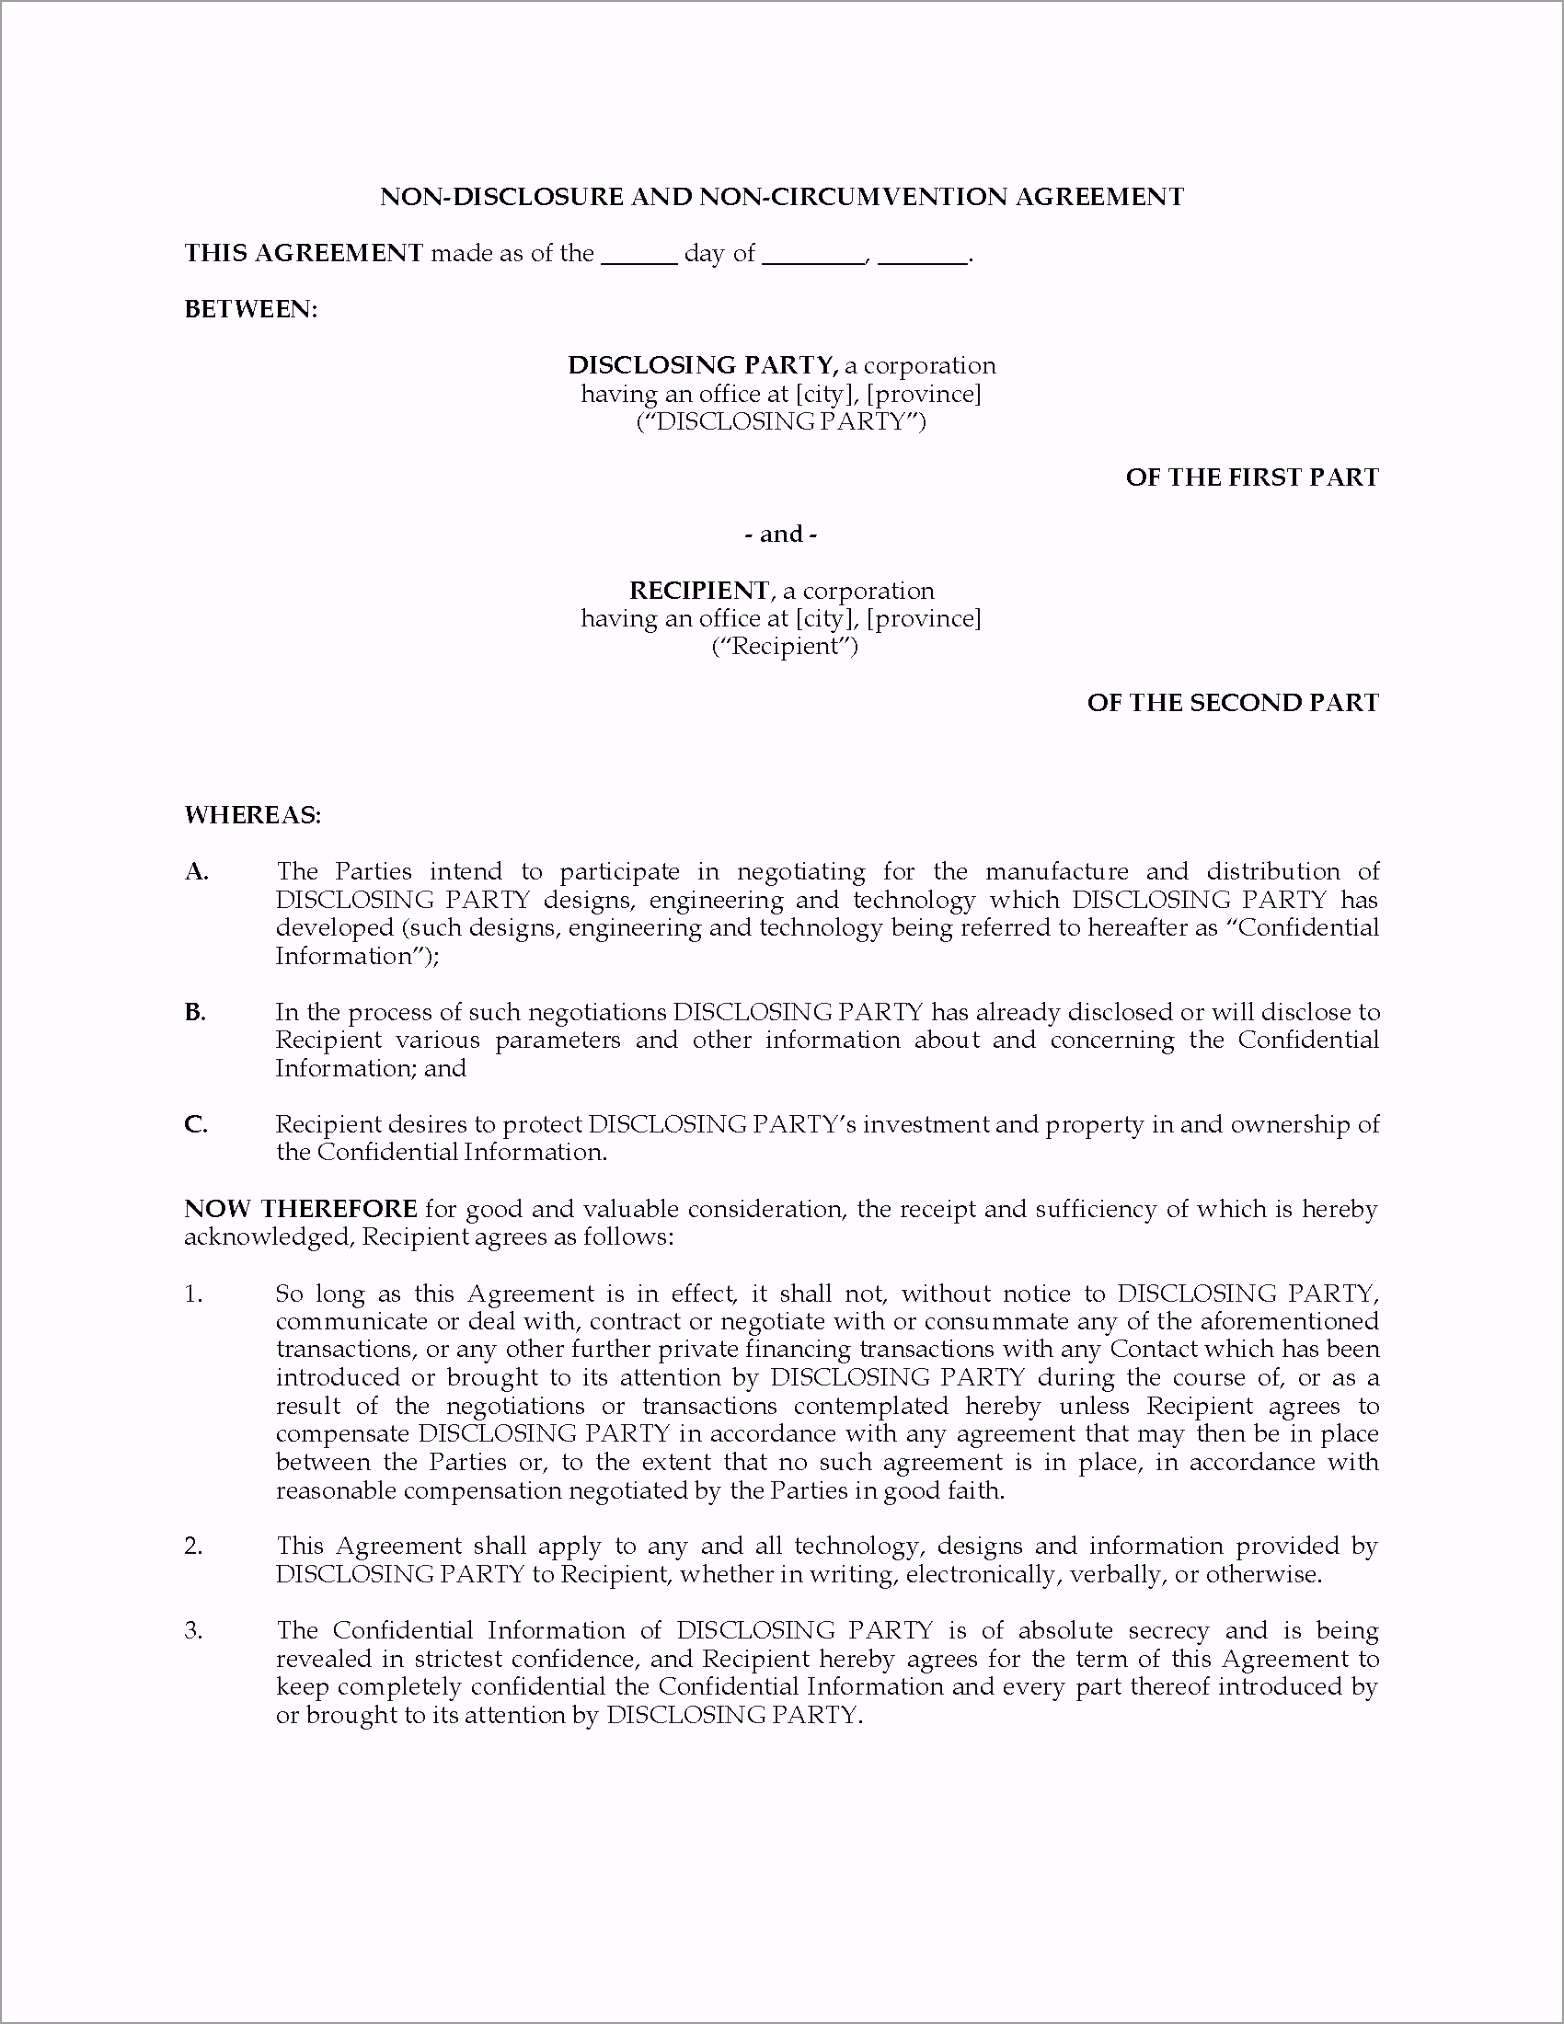 nondisclosure and noncircumvention agreement for manufacturing venture aueau